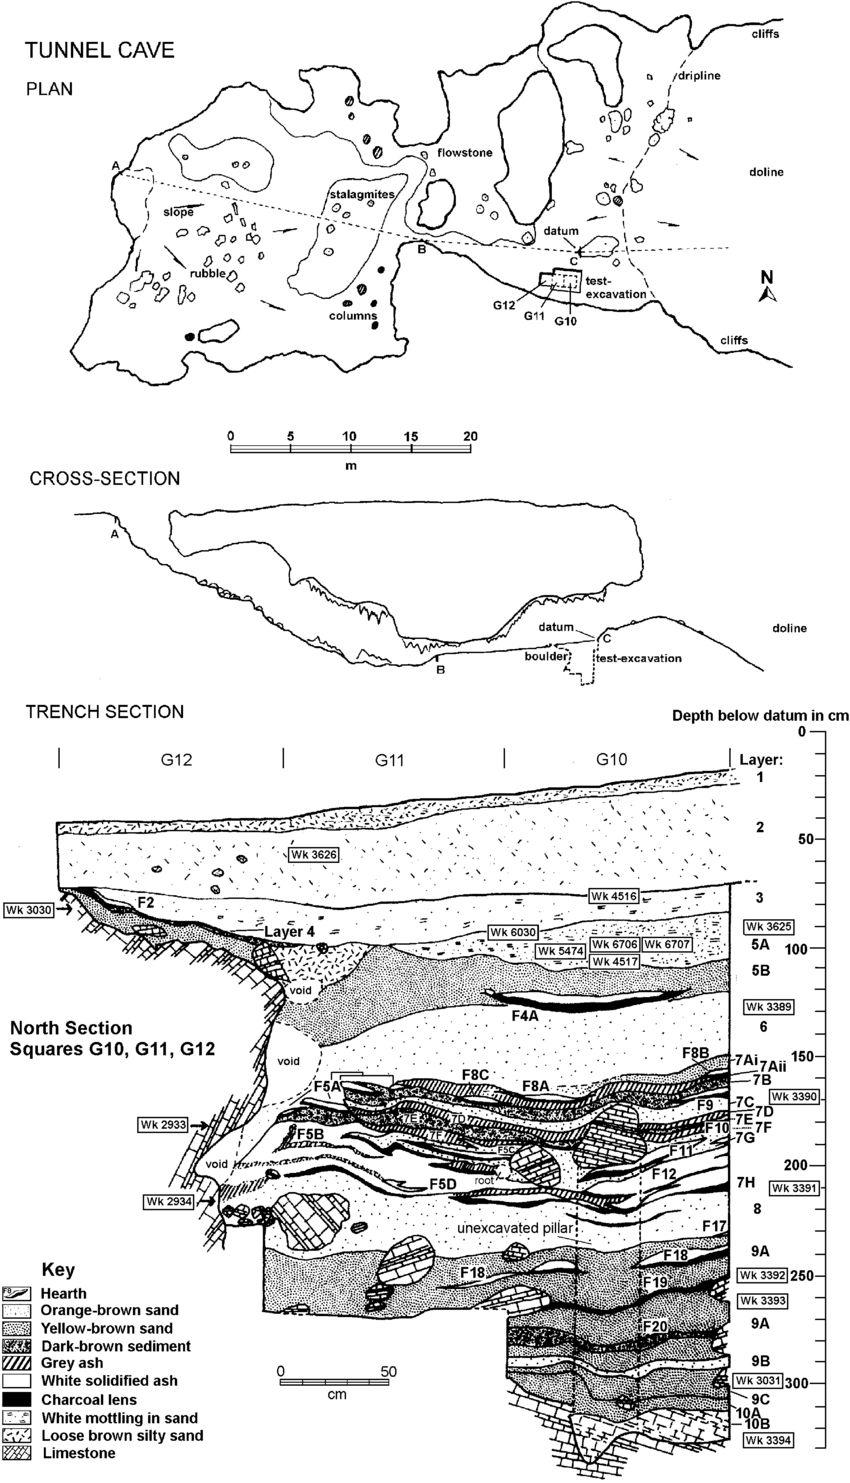 hight resolution of tunnel cave plan cave section and trench section